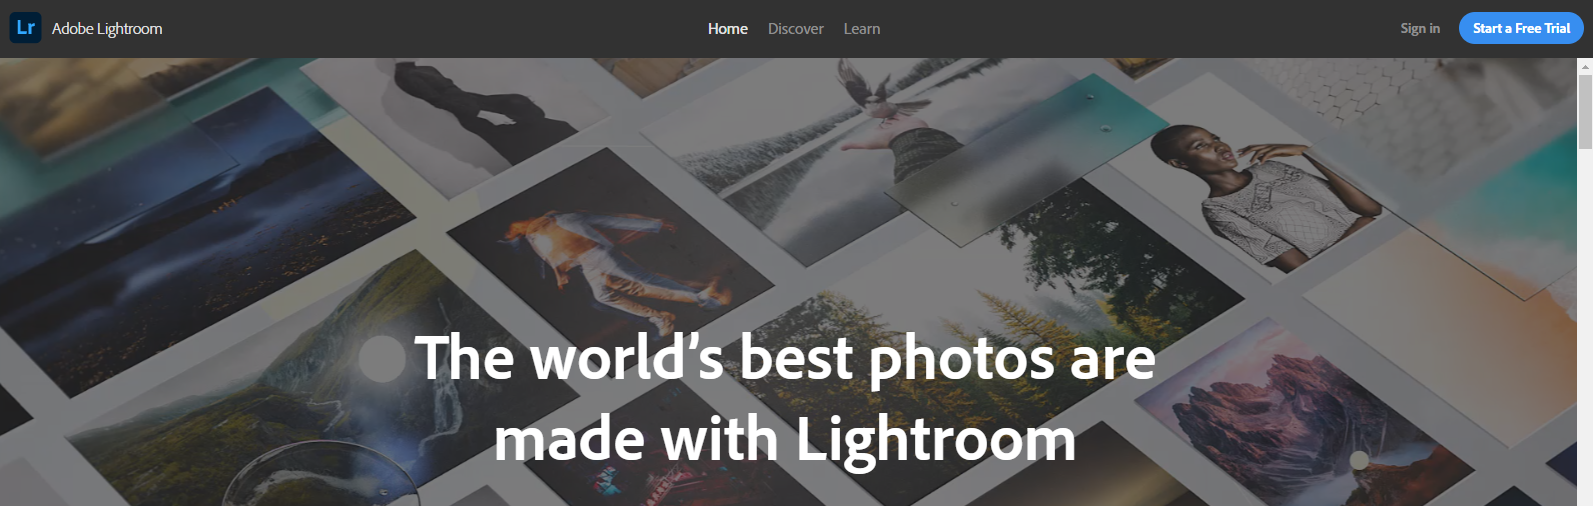 Lightroom on the web